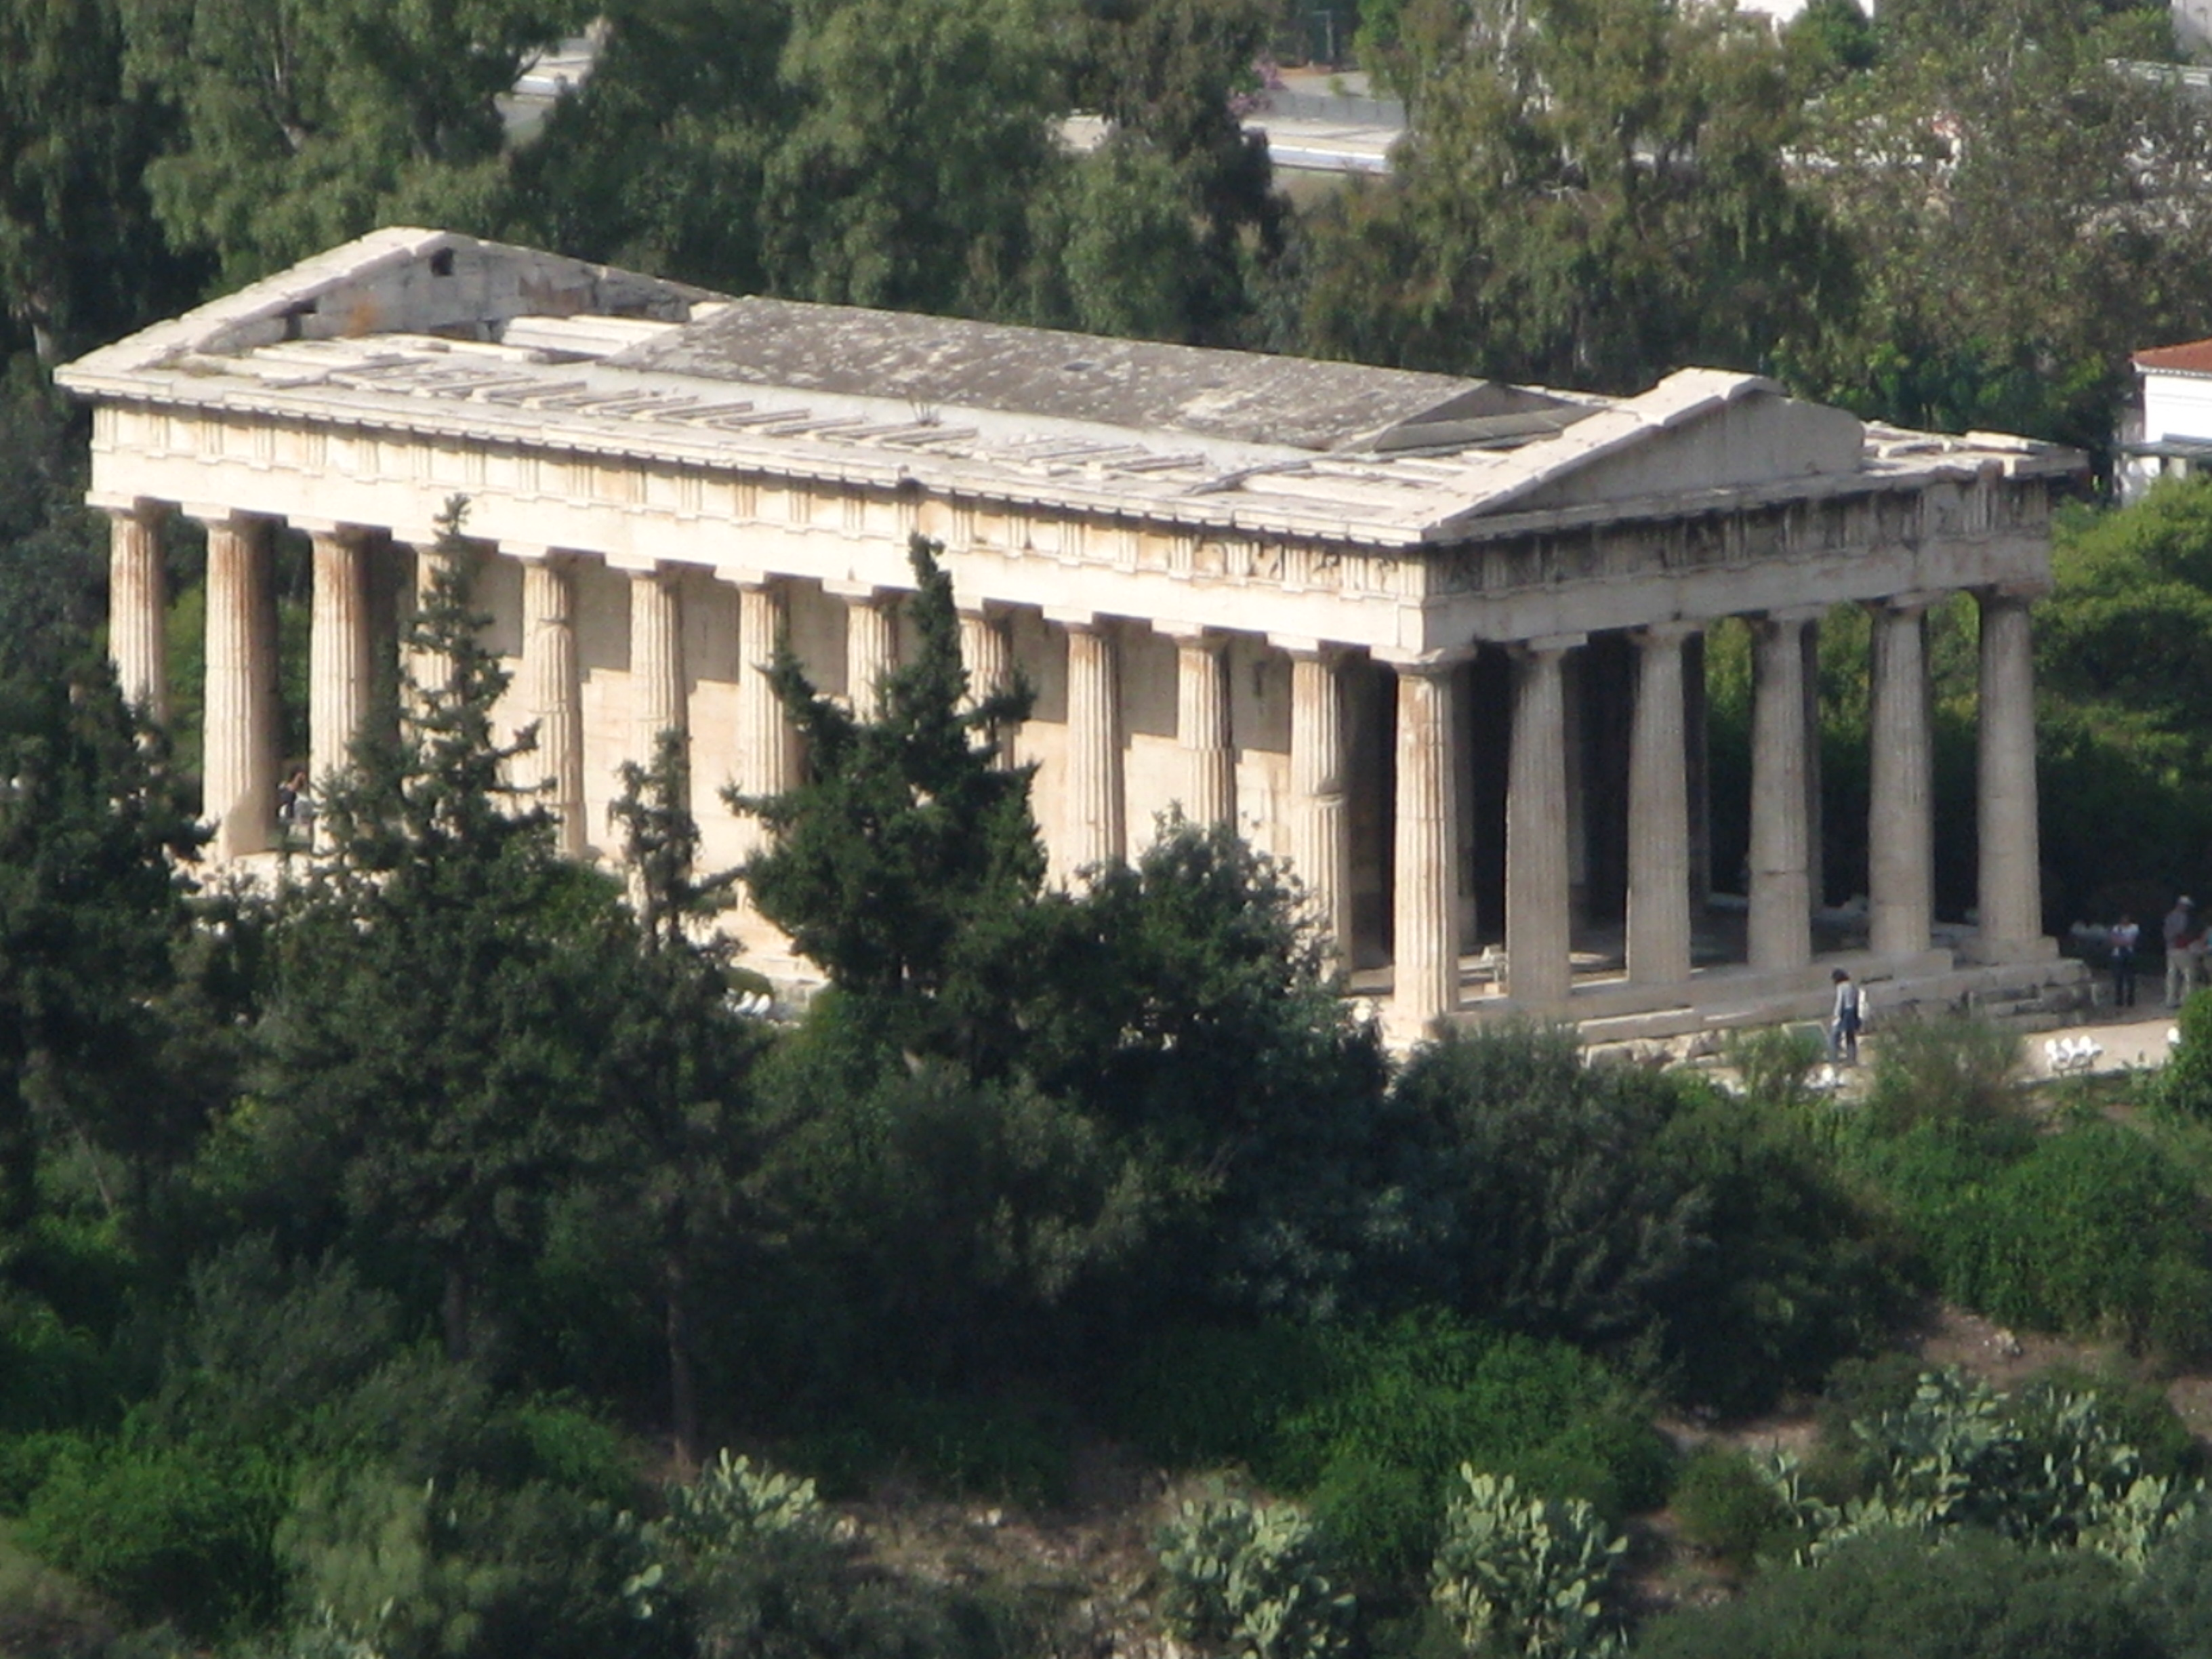 File:Temple of Hephaestus-Athens.jpg - Wikimedia Commons